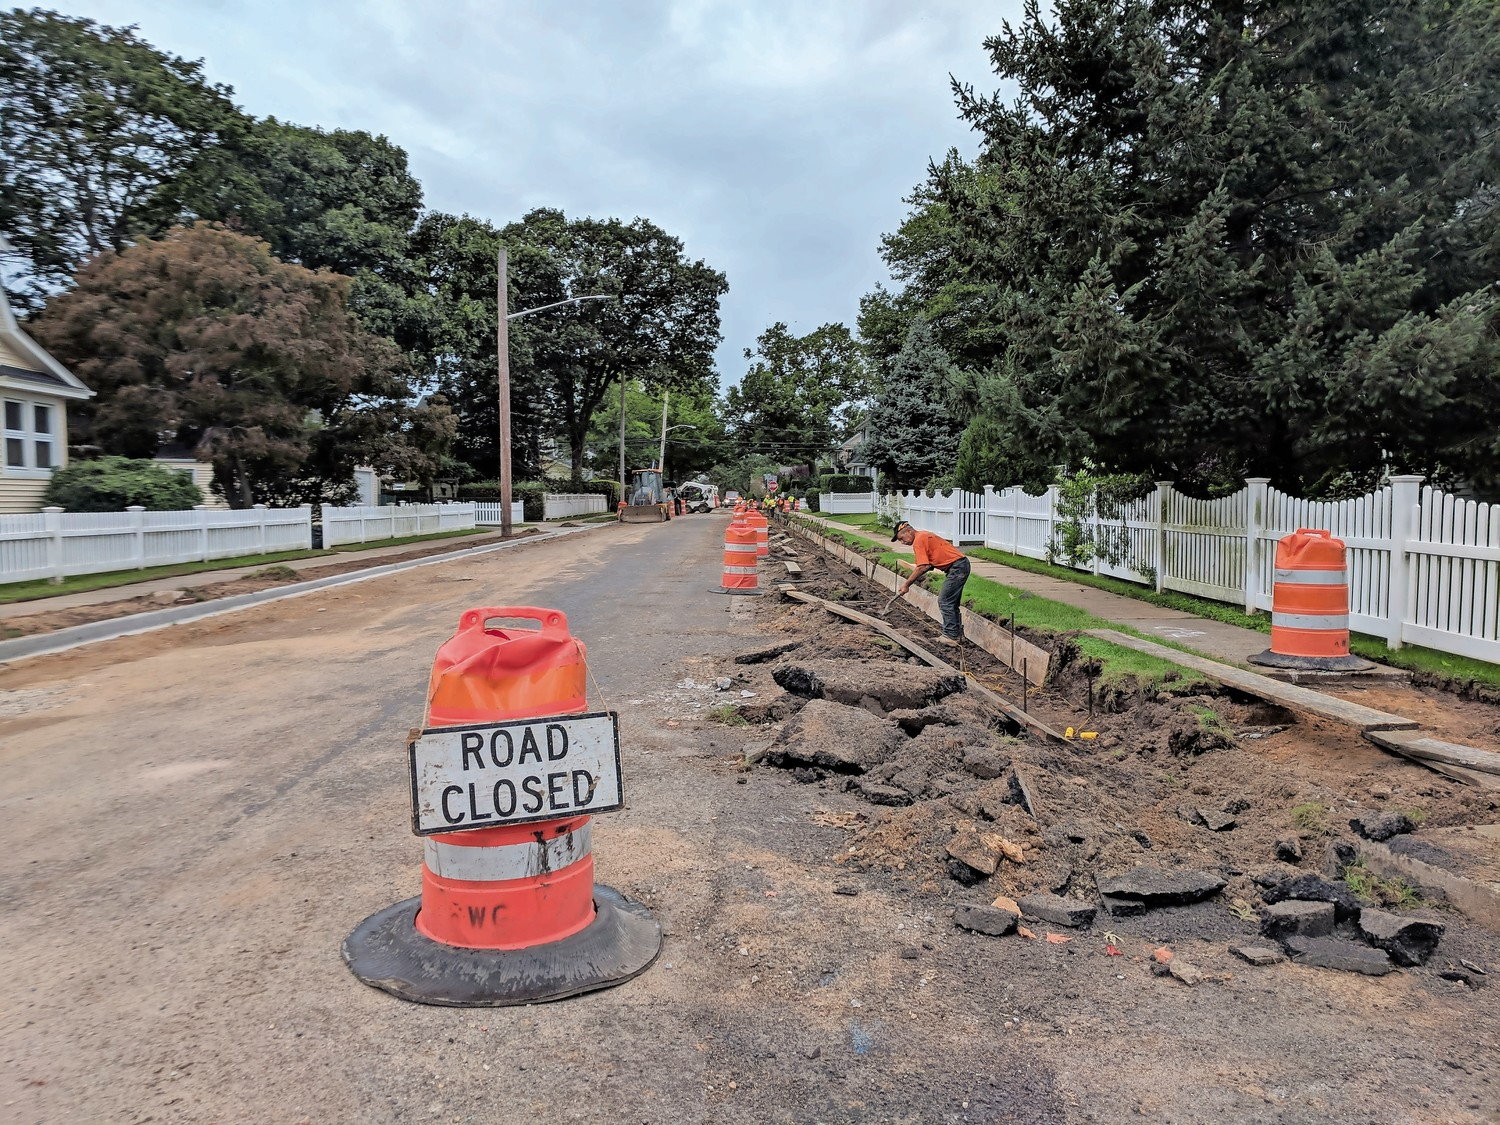 Roadwork took place last week on Locust Avenue, a street initially lined with towering trees, most of which were removed due to disease or complications with the infrastructure underneath.